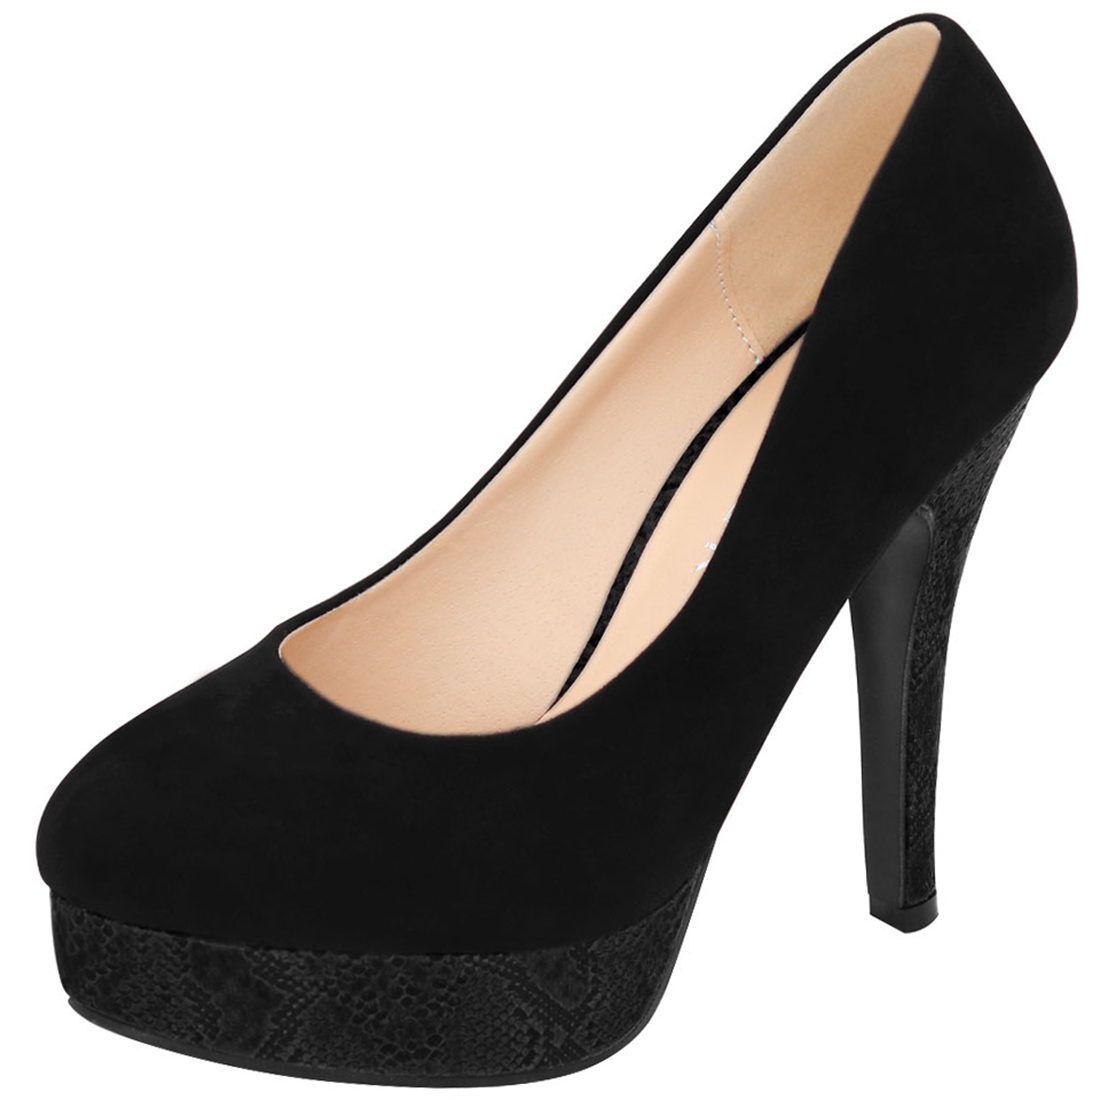 Woman Rounded Toe Snake Effect Stiletto Platform Pumps Black US 7.5